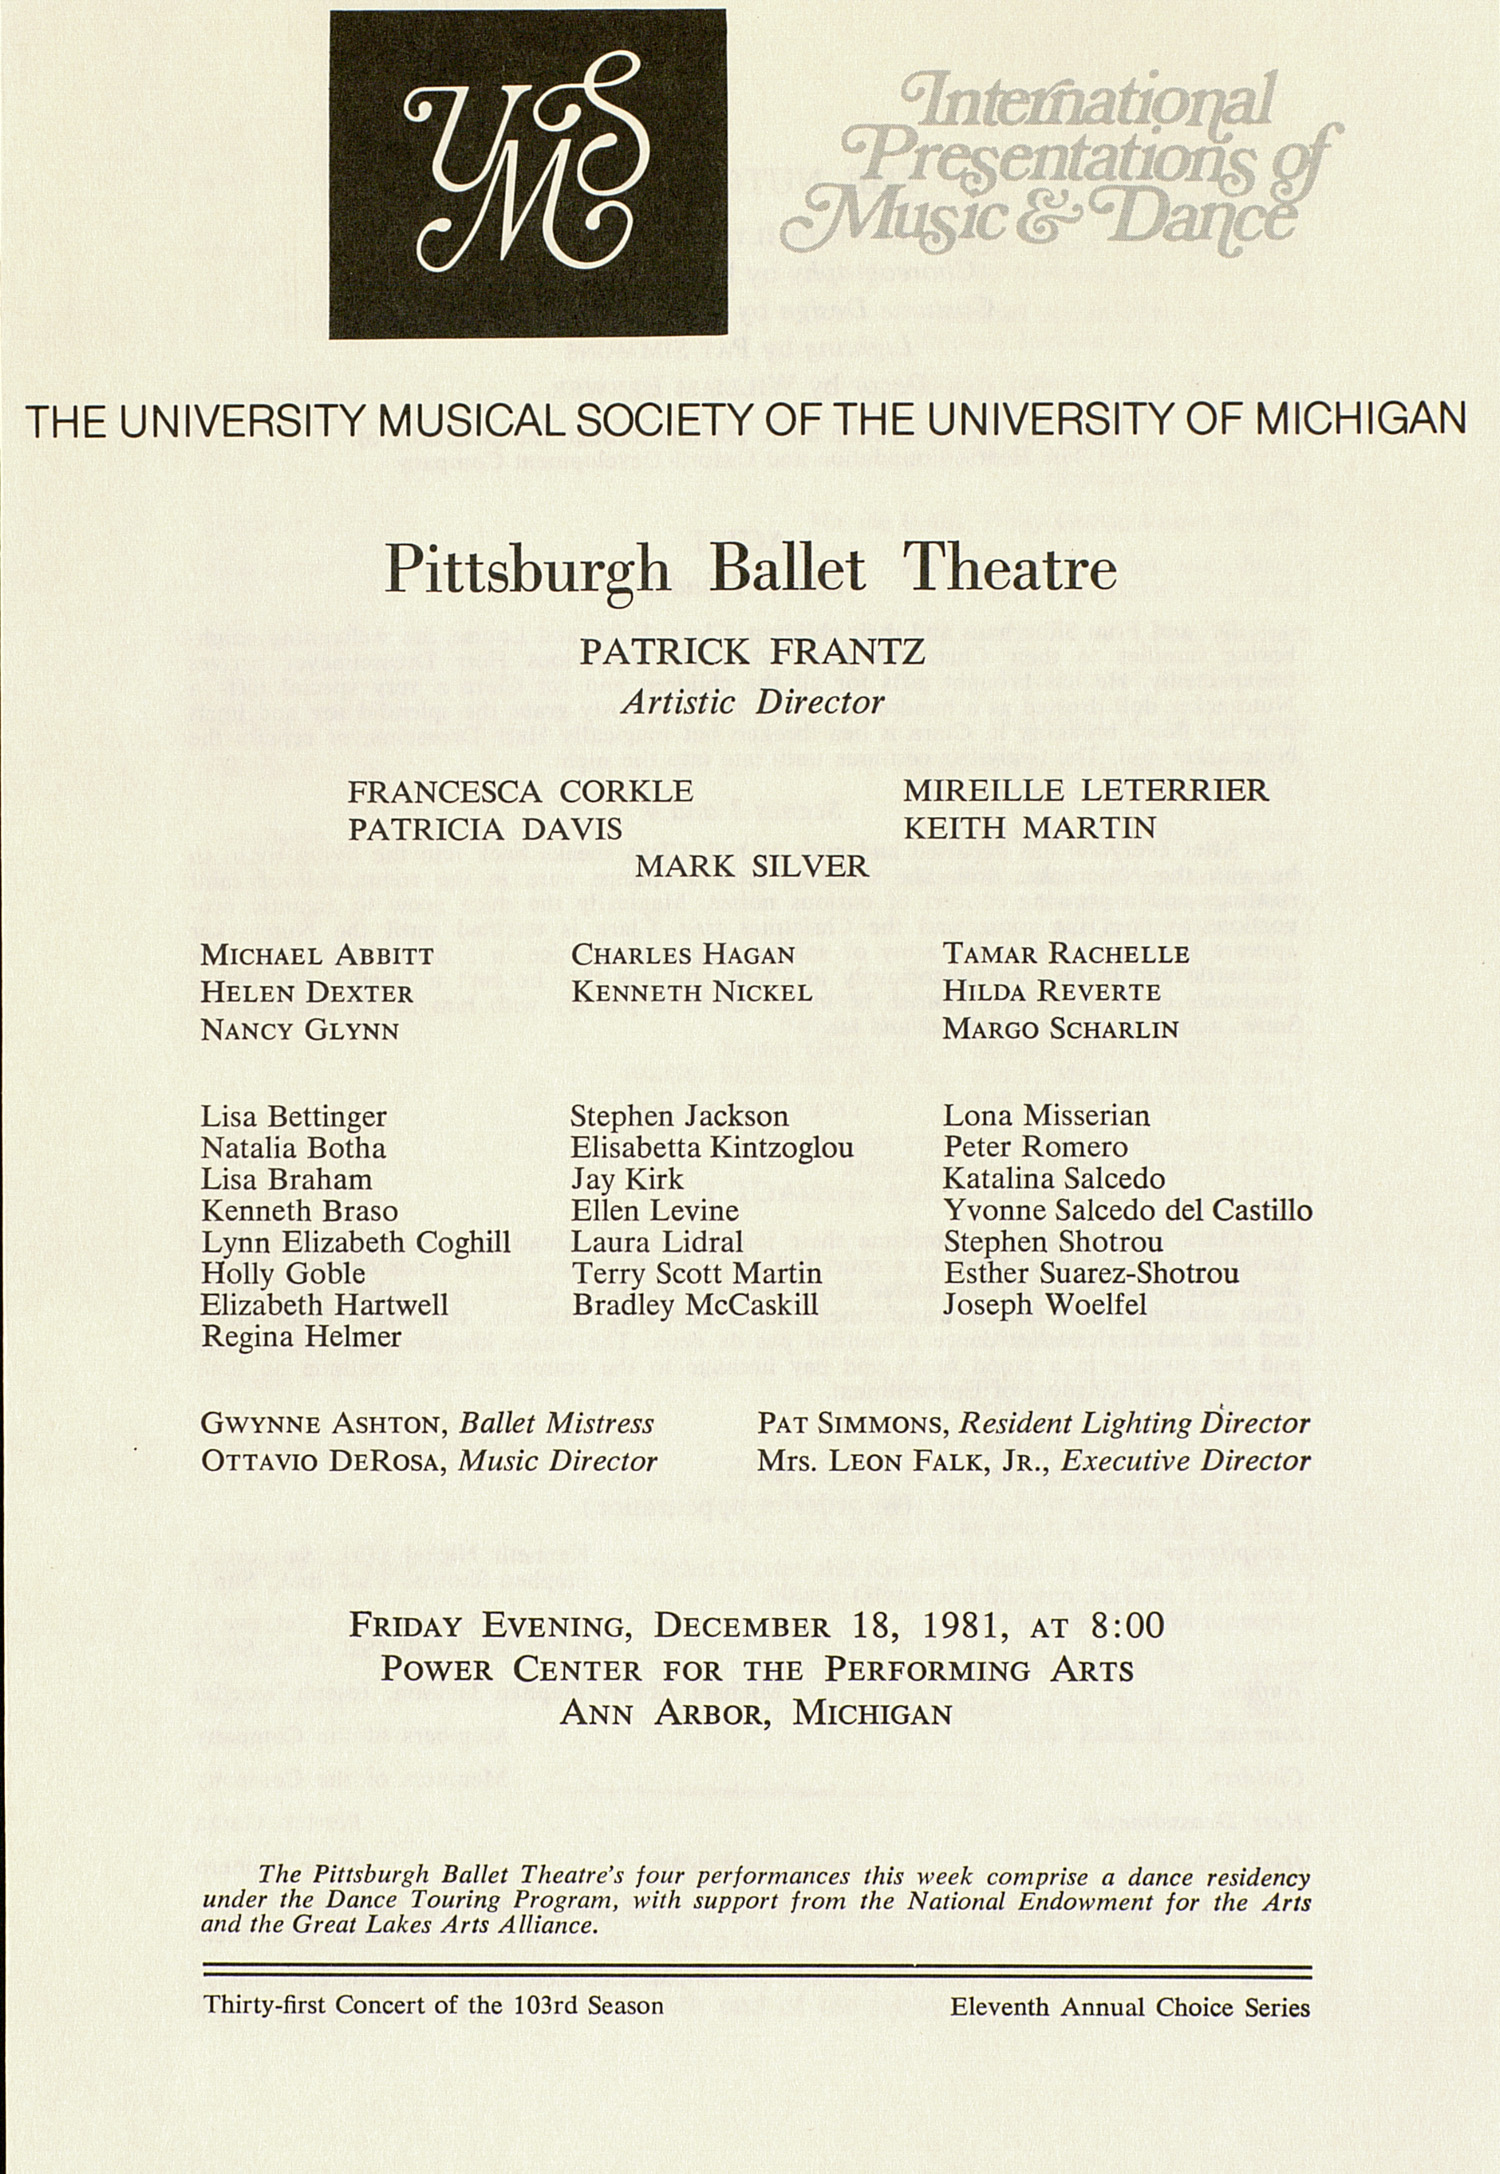 UMS Concert Program, December 18, 1981: International Presentations Of Music & Dance -- Pittsburgh Ballet Theatre image